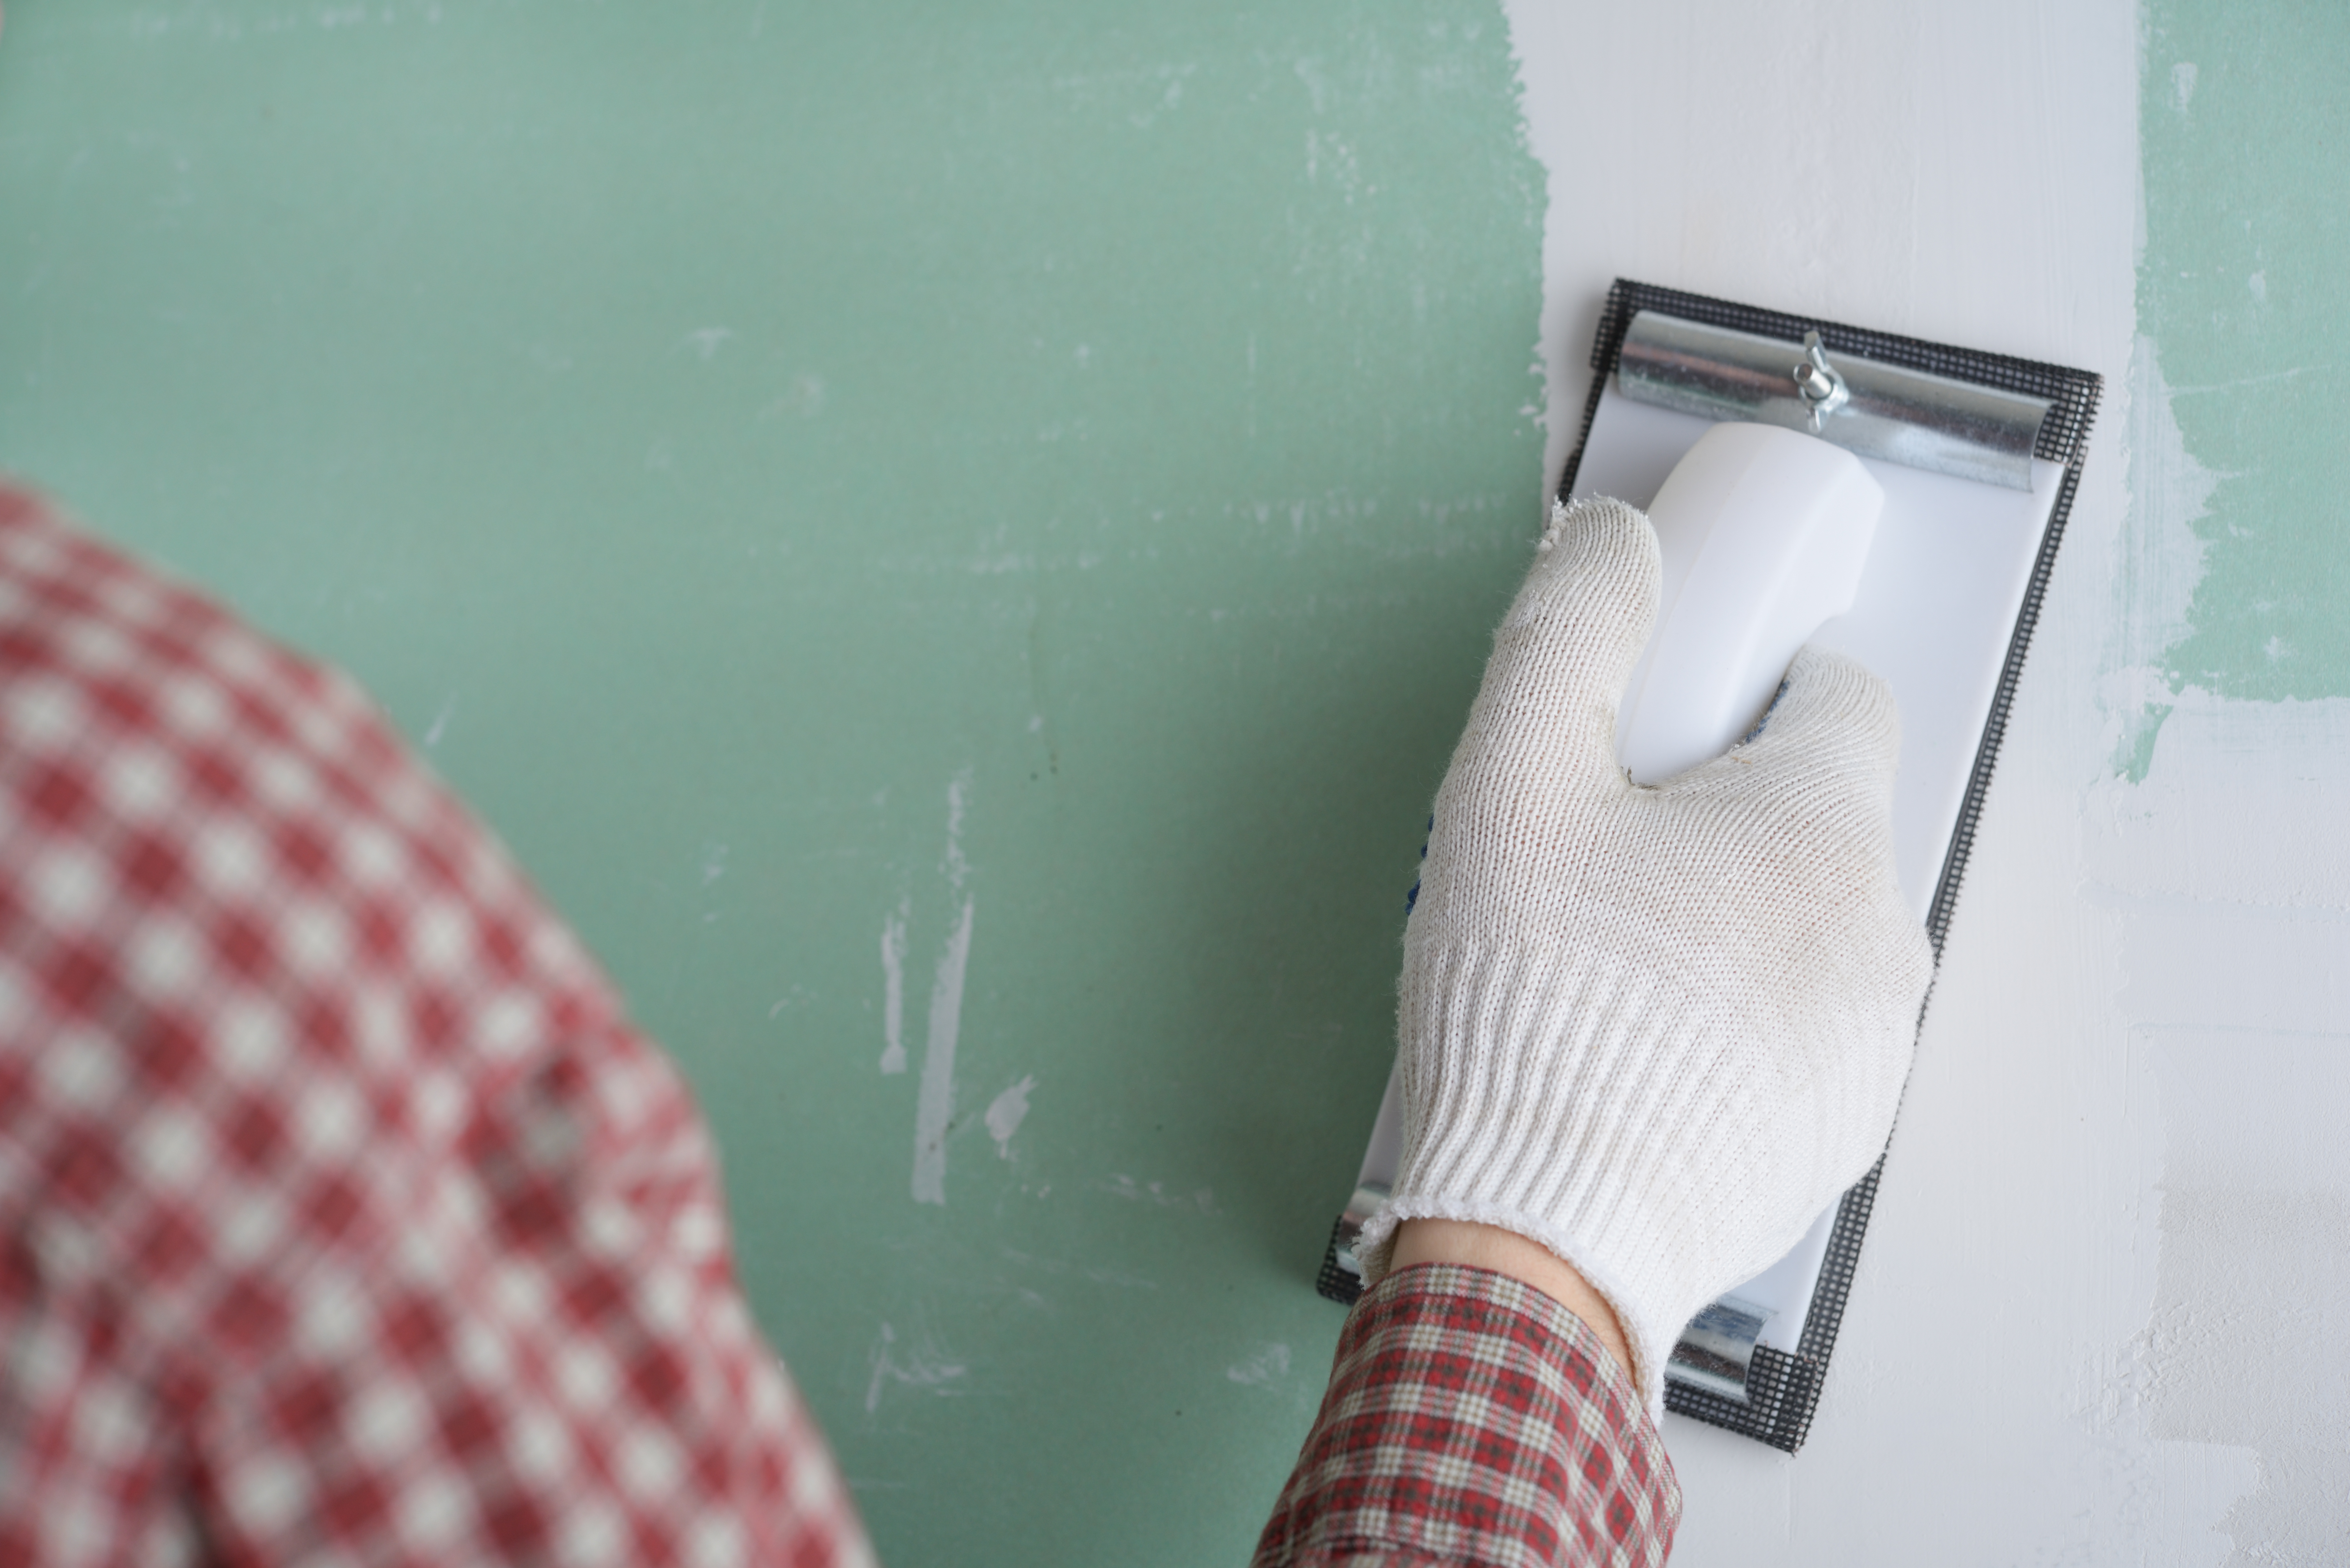 Contractor sanding the drywall mud using sand trowel